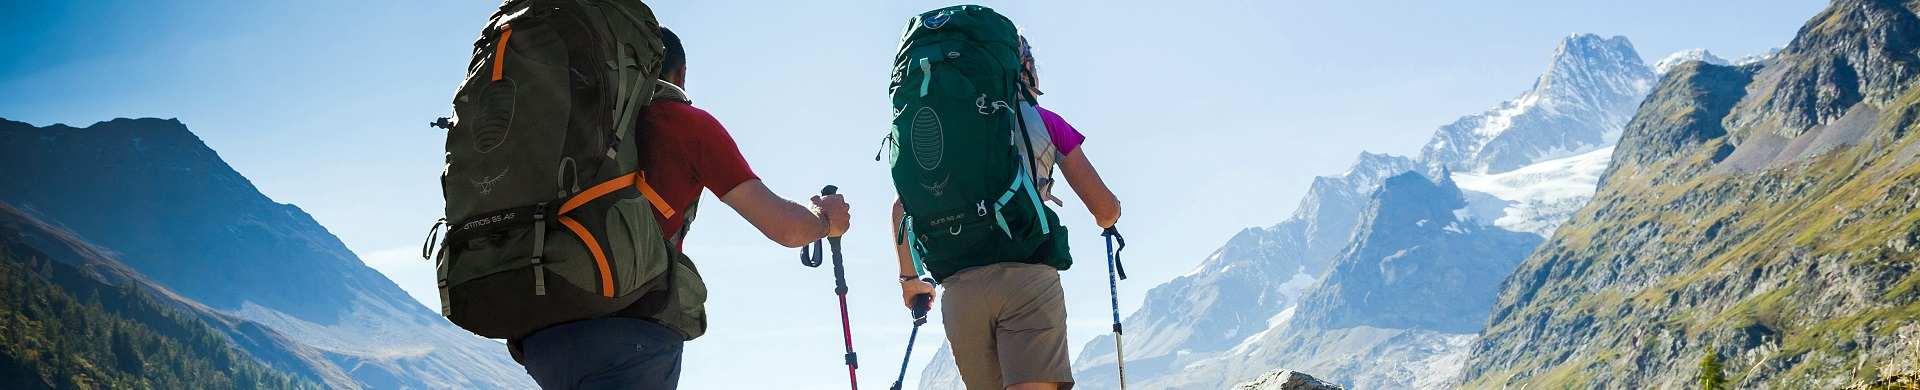 Backpack + Walking Poles + Mountains